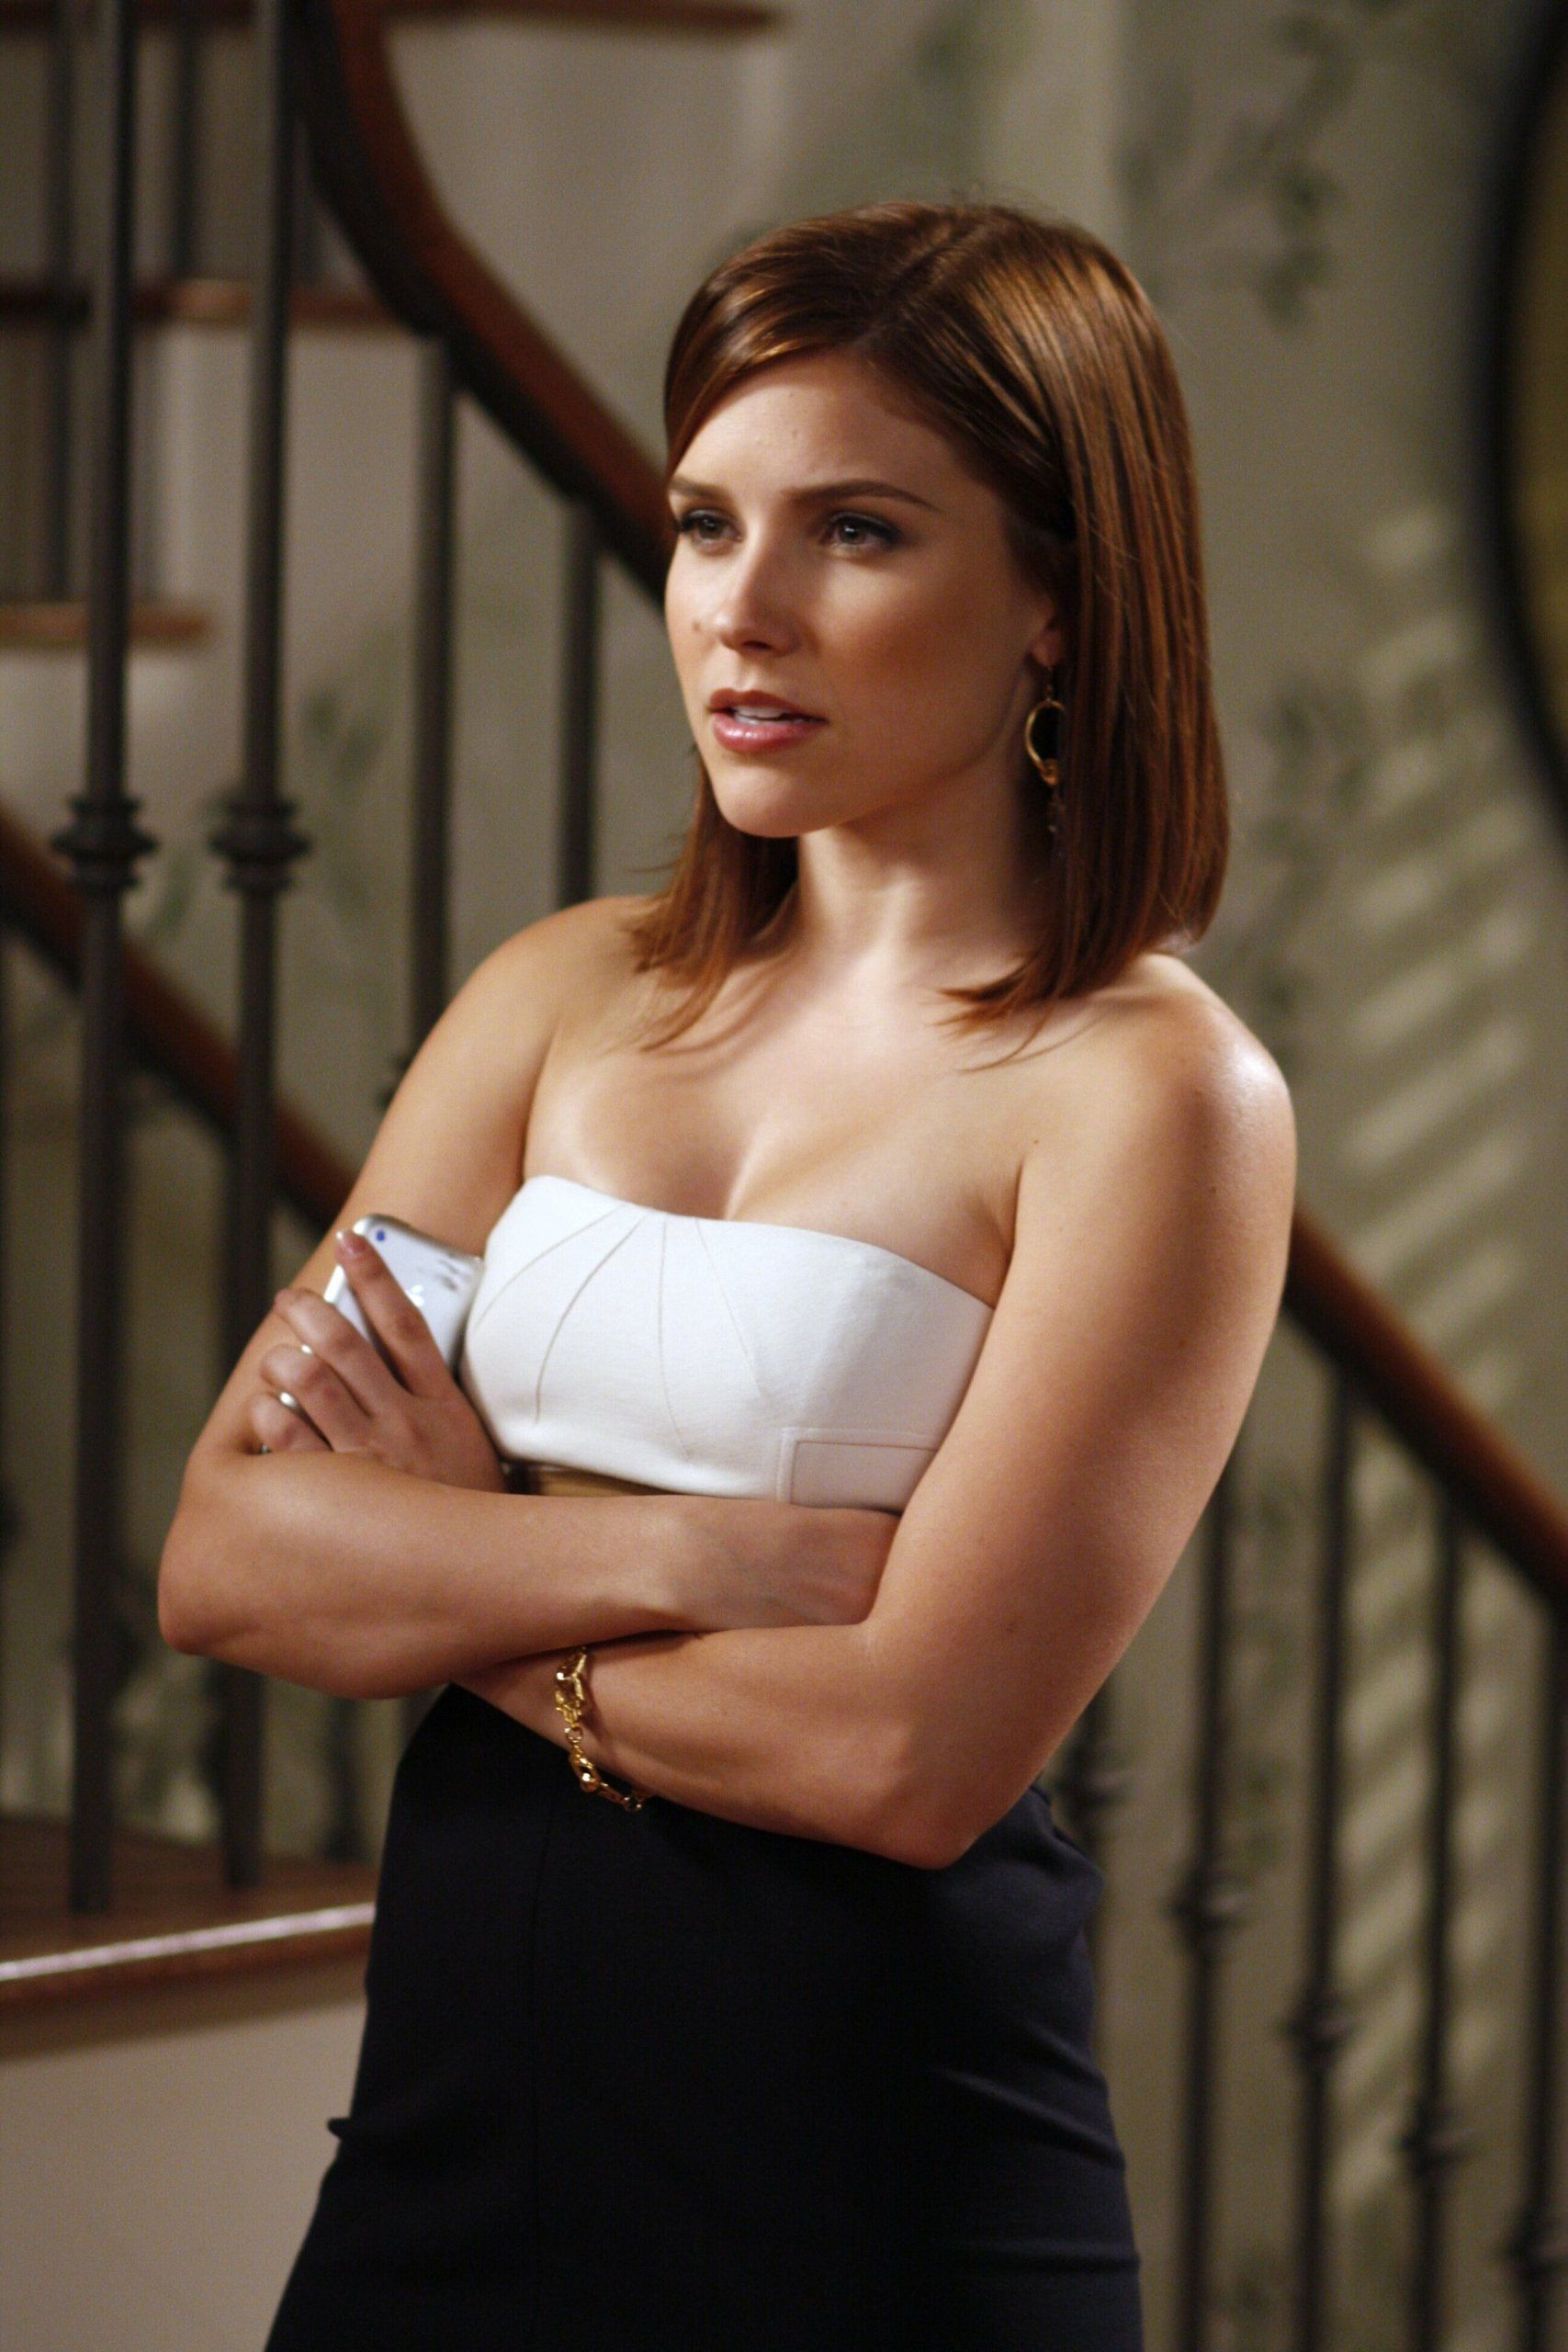 brooke davis - google search | rach | brooke davis hair